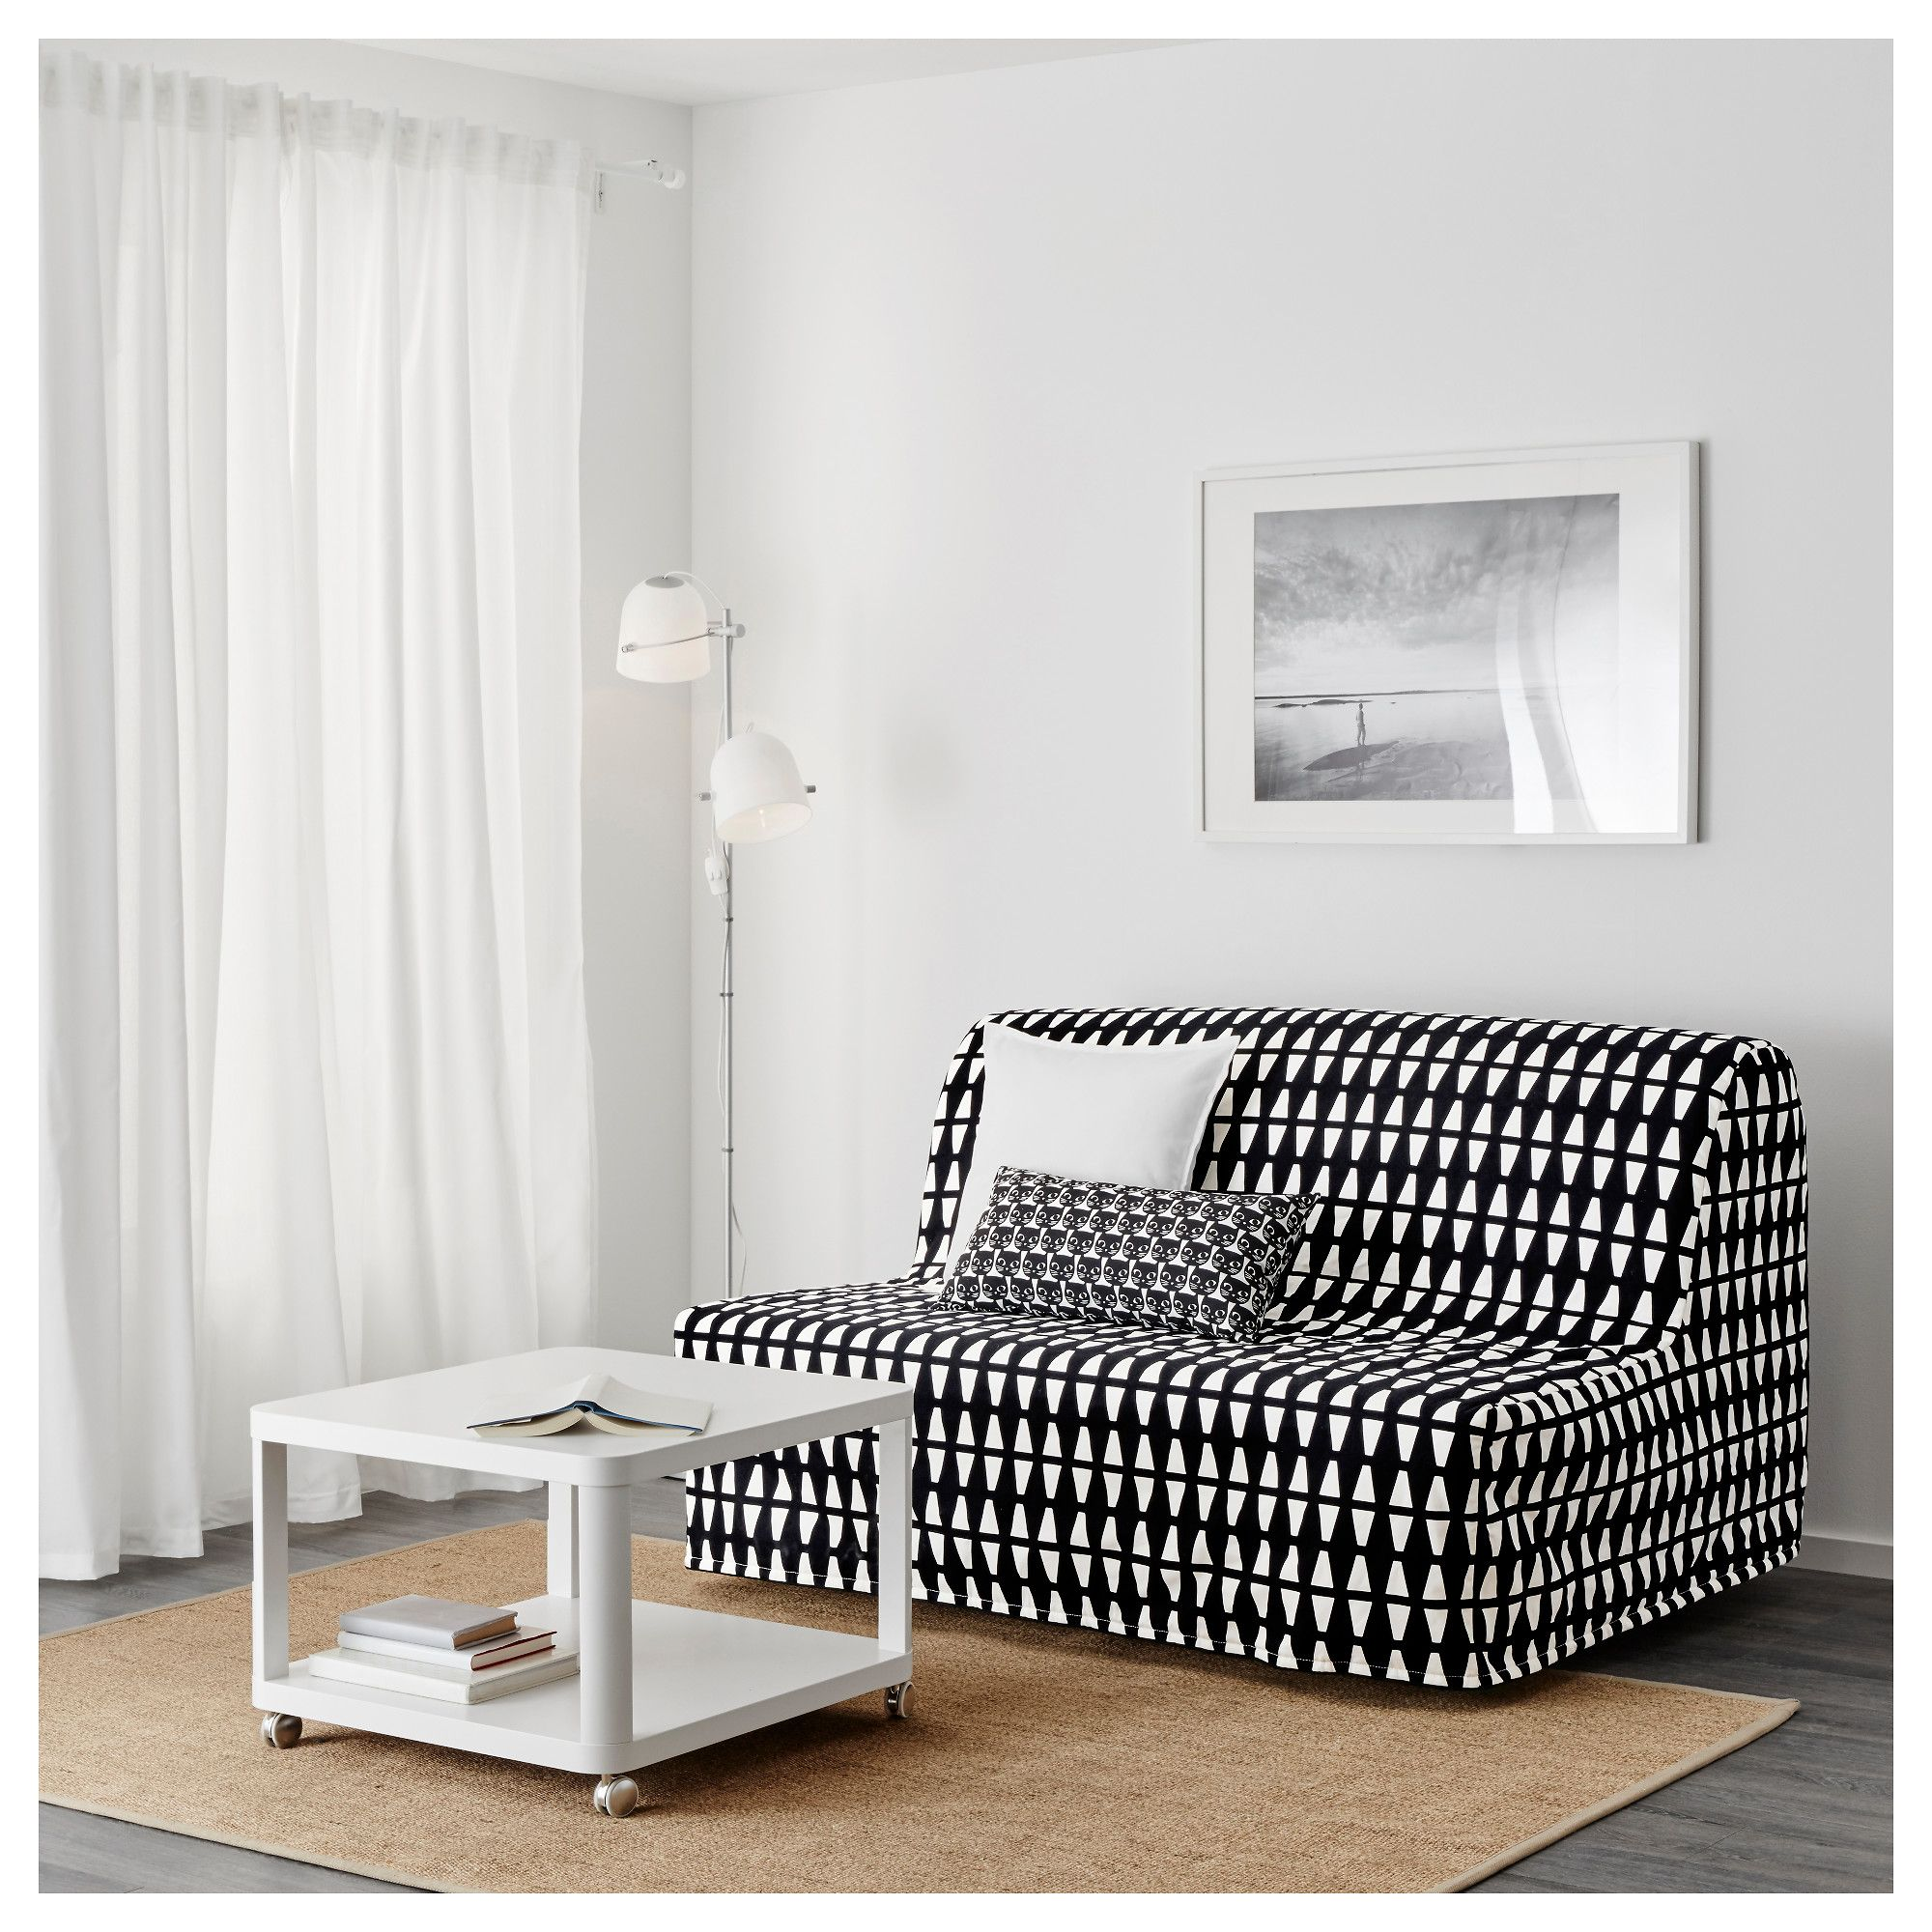 Ikea Bank Mit Lehne Lycksele HÅvet Two Seat Sofa Bed Ebbarp Black White Ikea Plannen